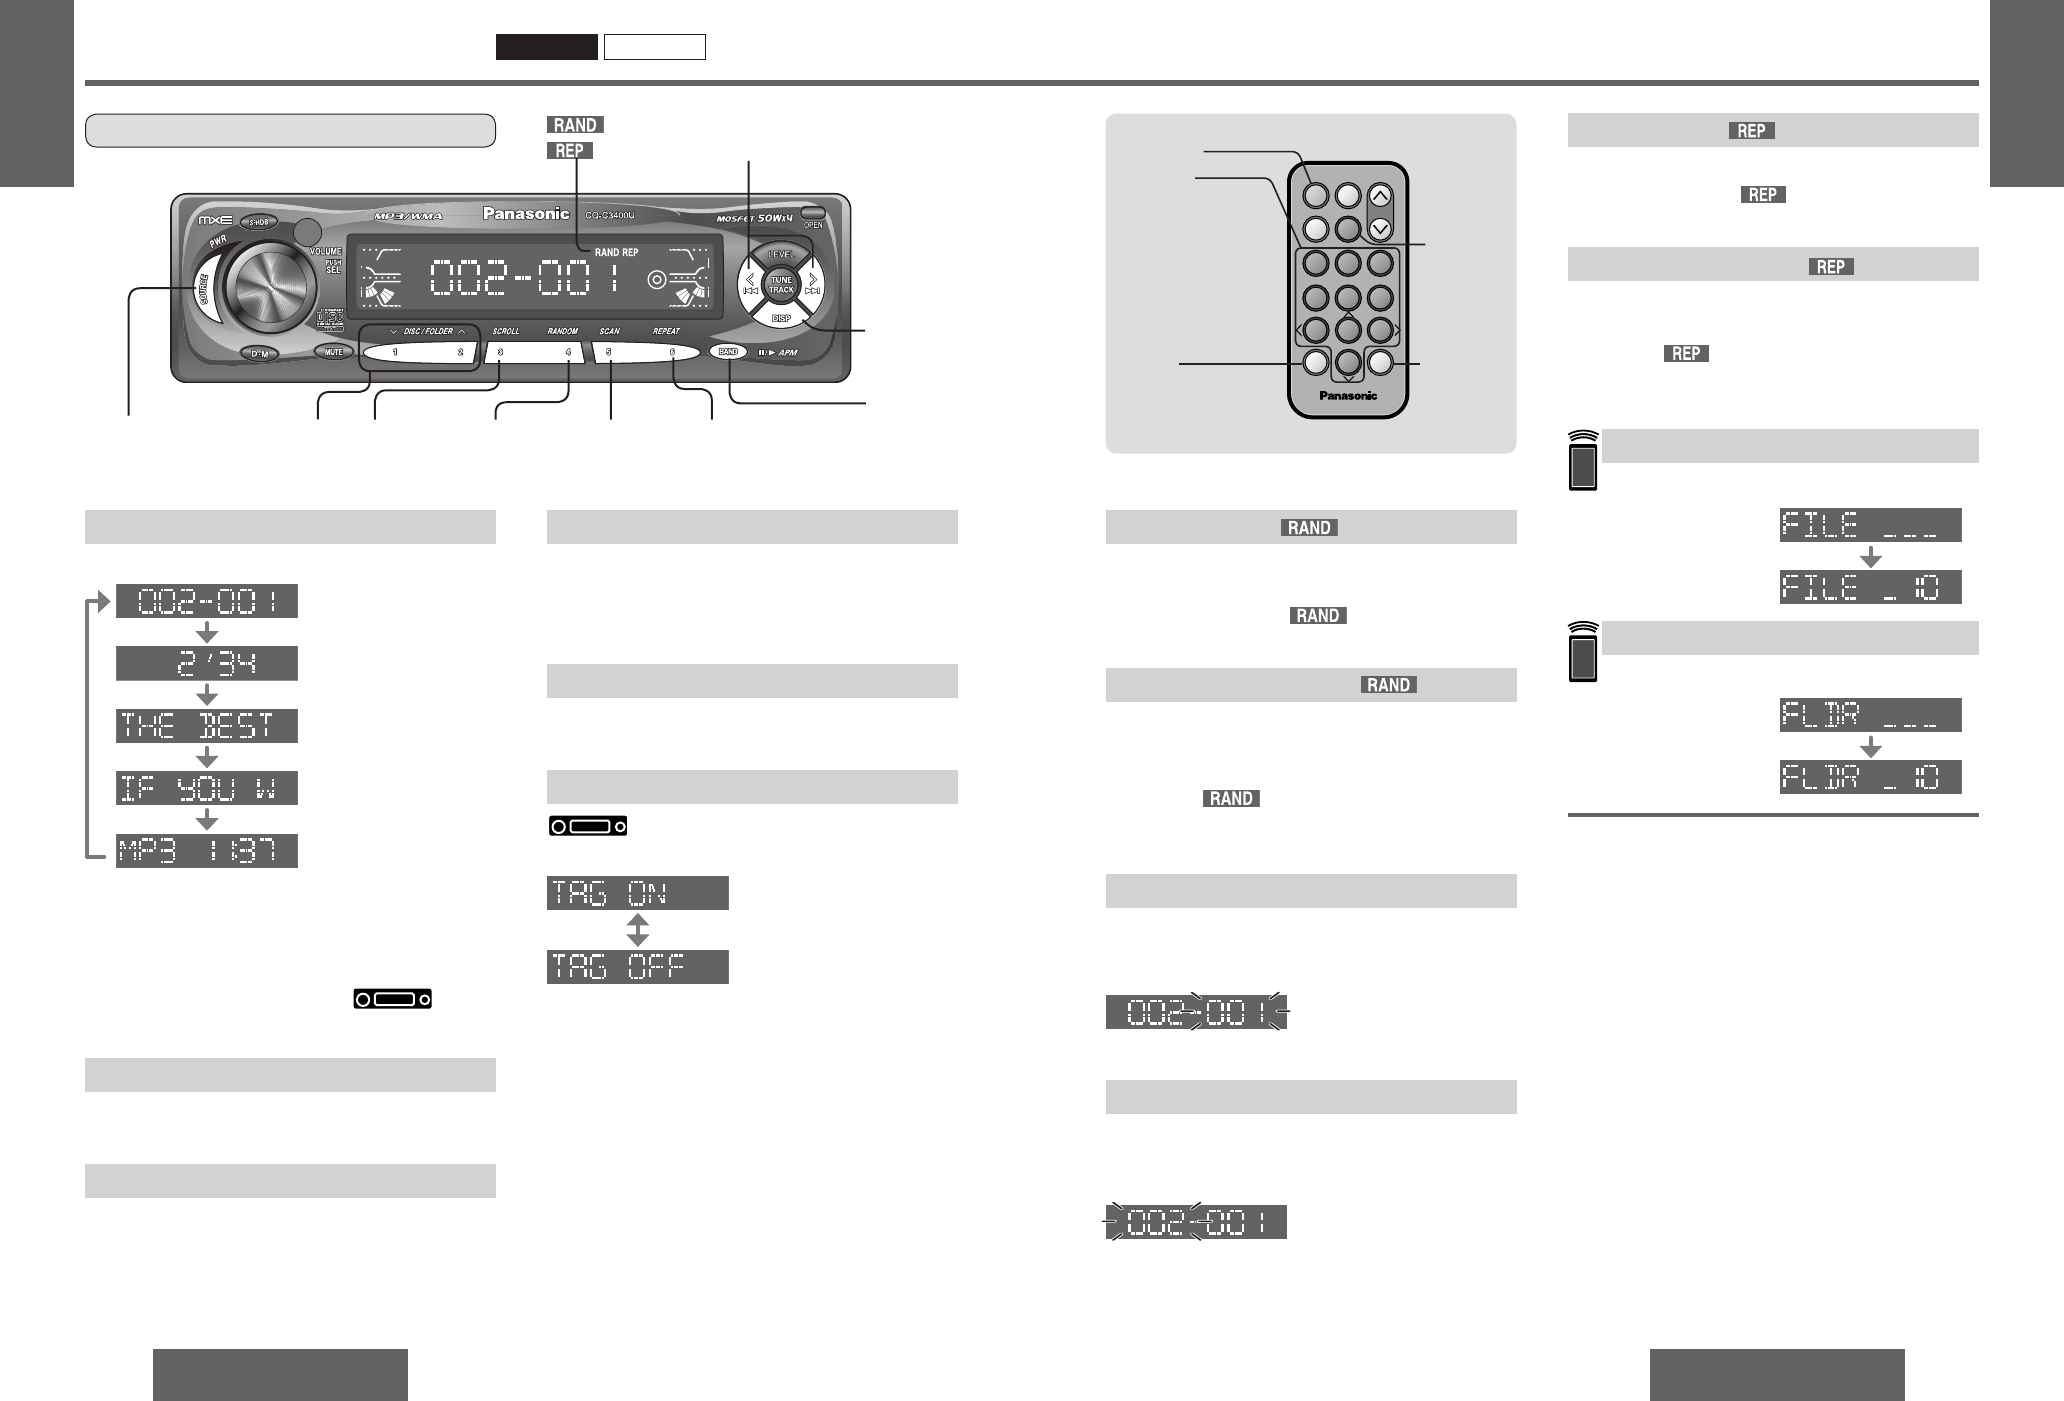 Page 9 of Panasonic Car Stereo System C3100U User Guide